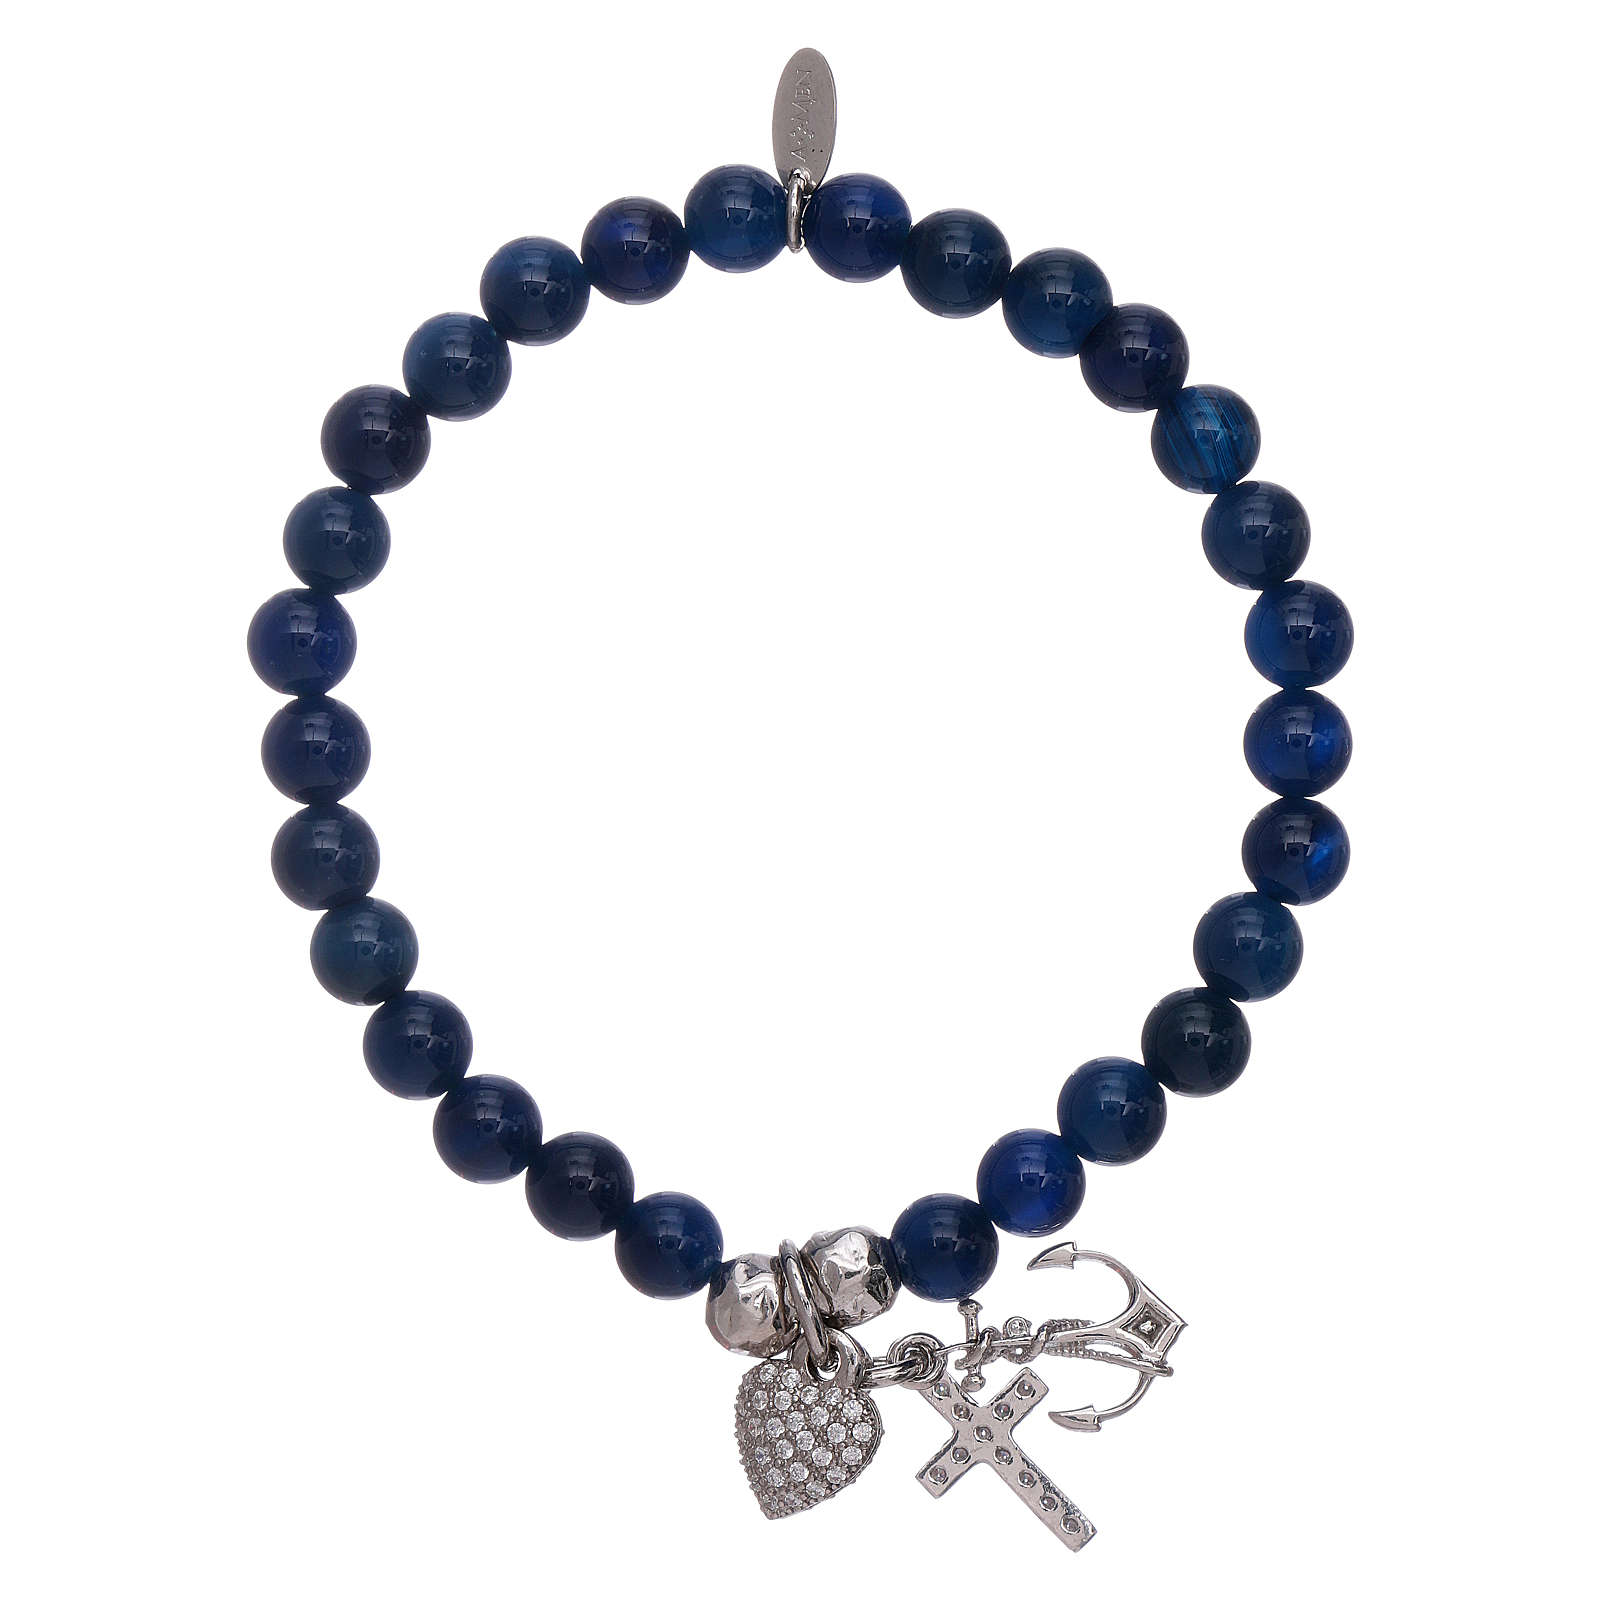 AMEN blue 925 sterling silver bracelet with 5 mm beads, Faith, Hope and Charity 4